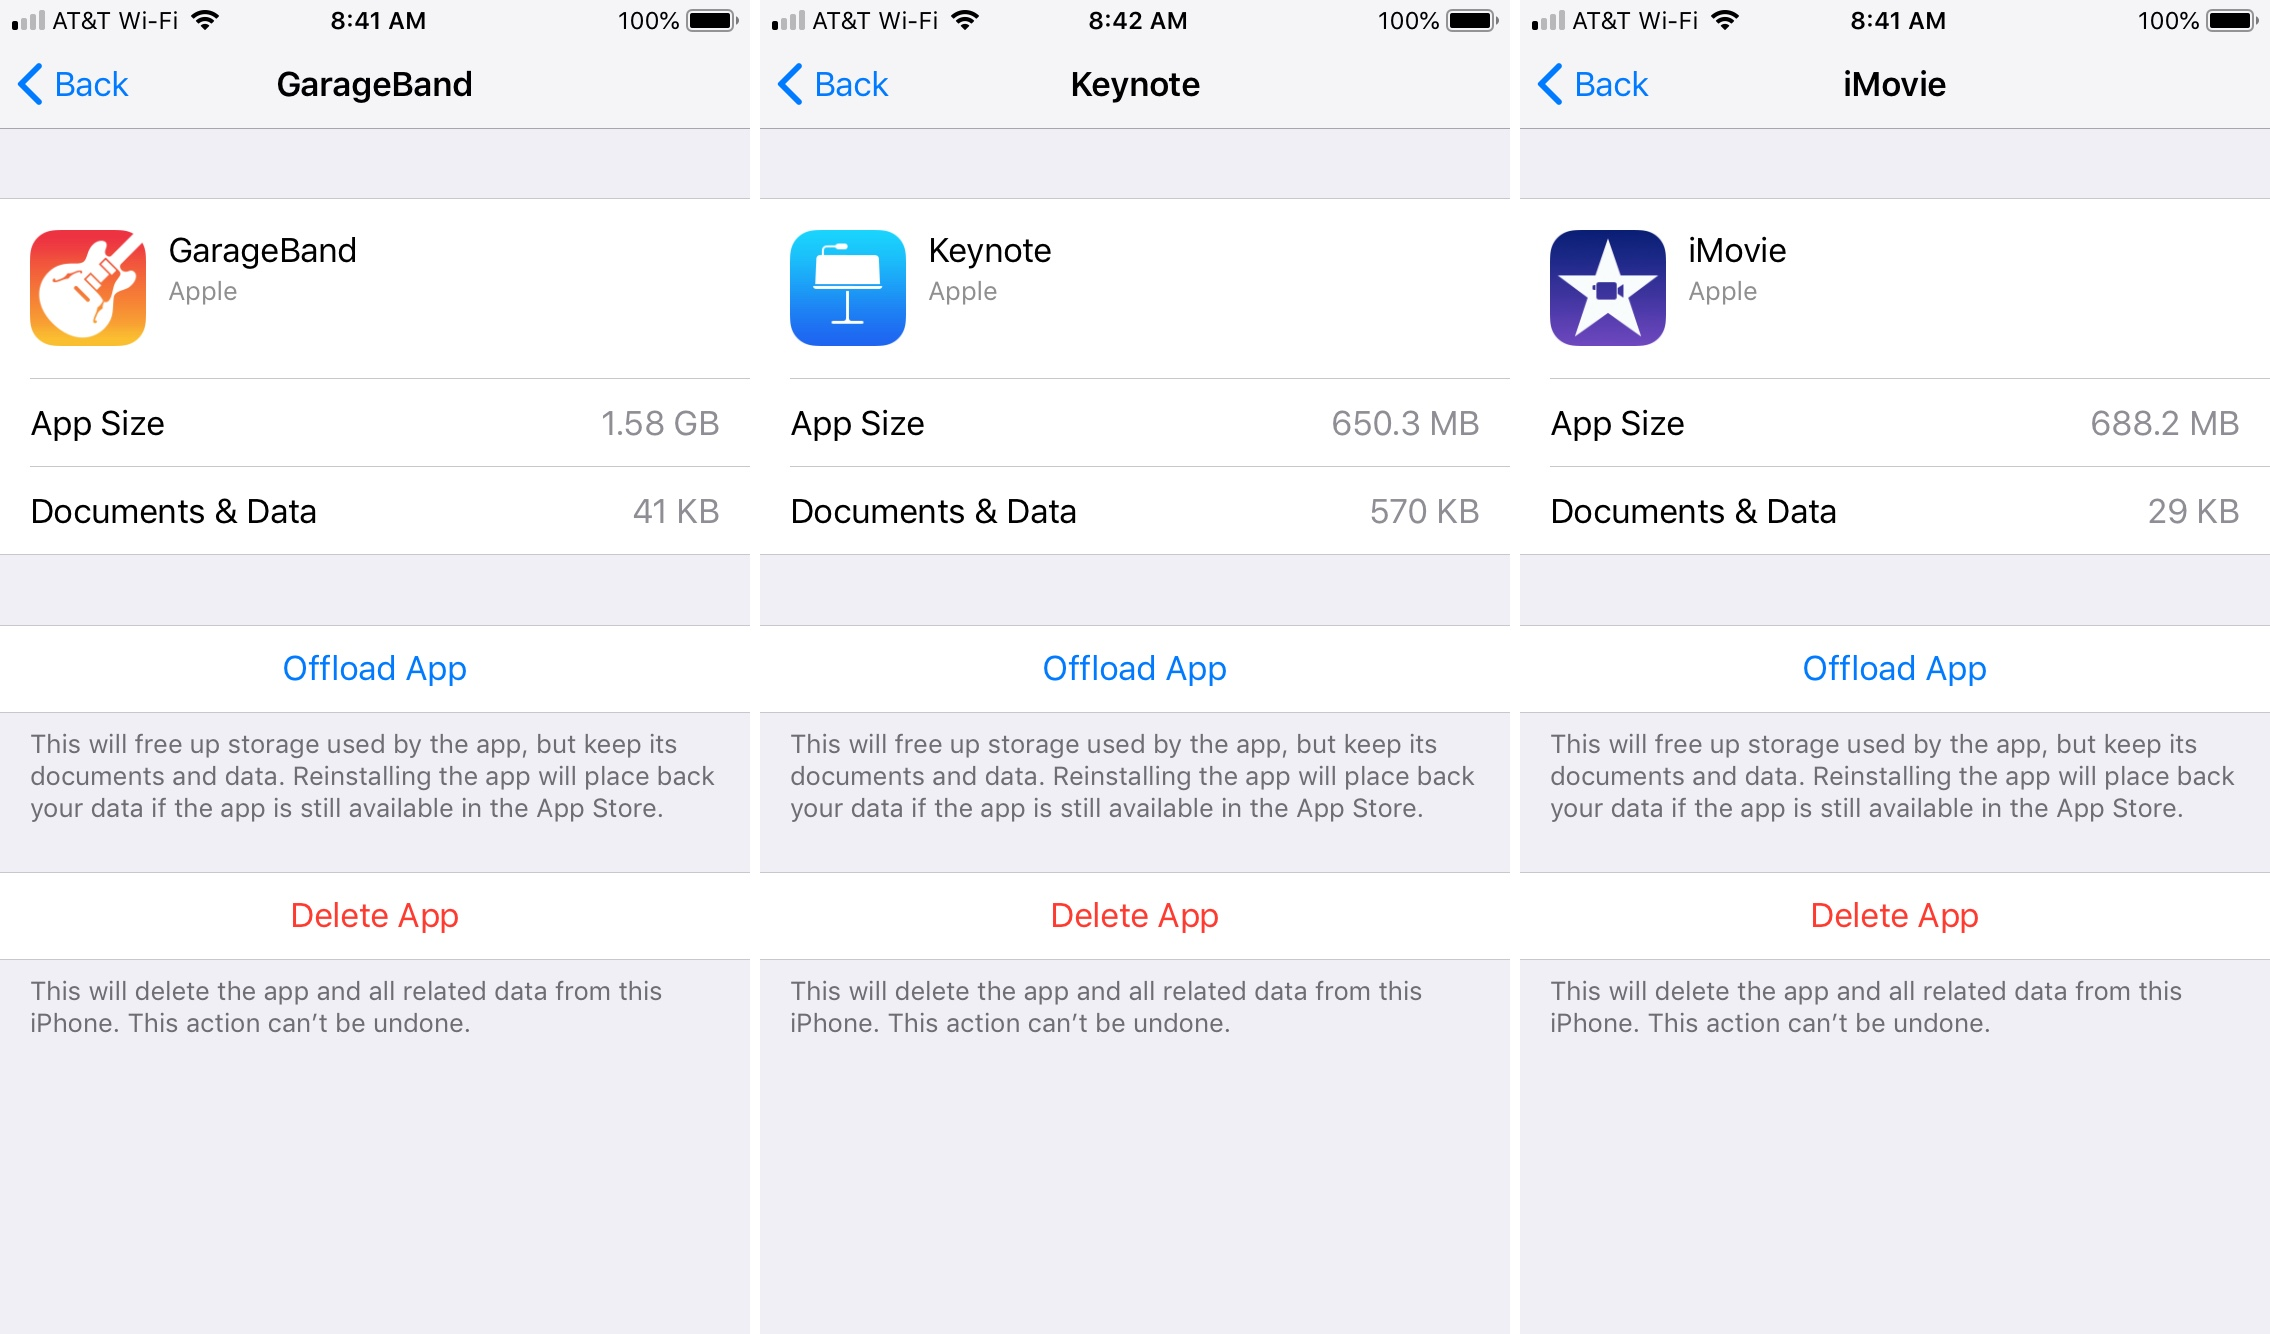 How to quickly save over 2 GB of storage space on your new iPhone or